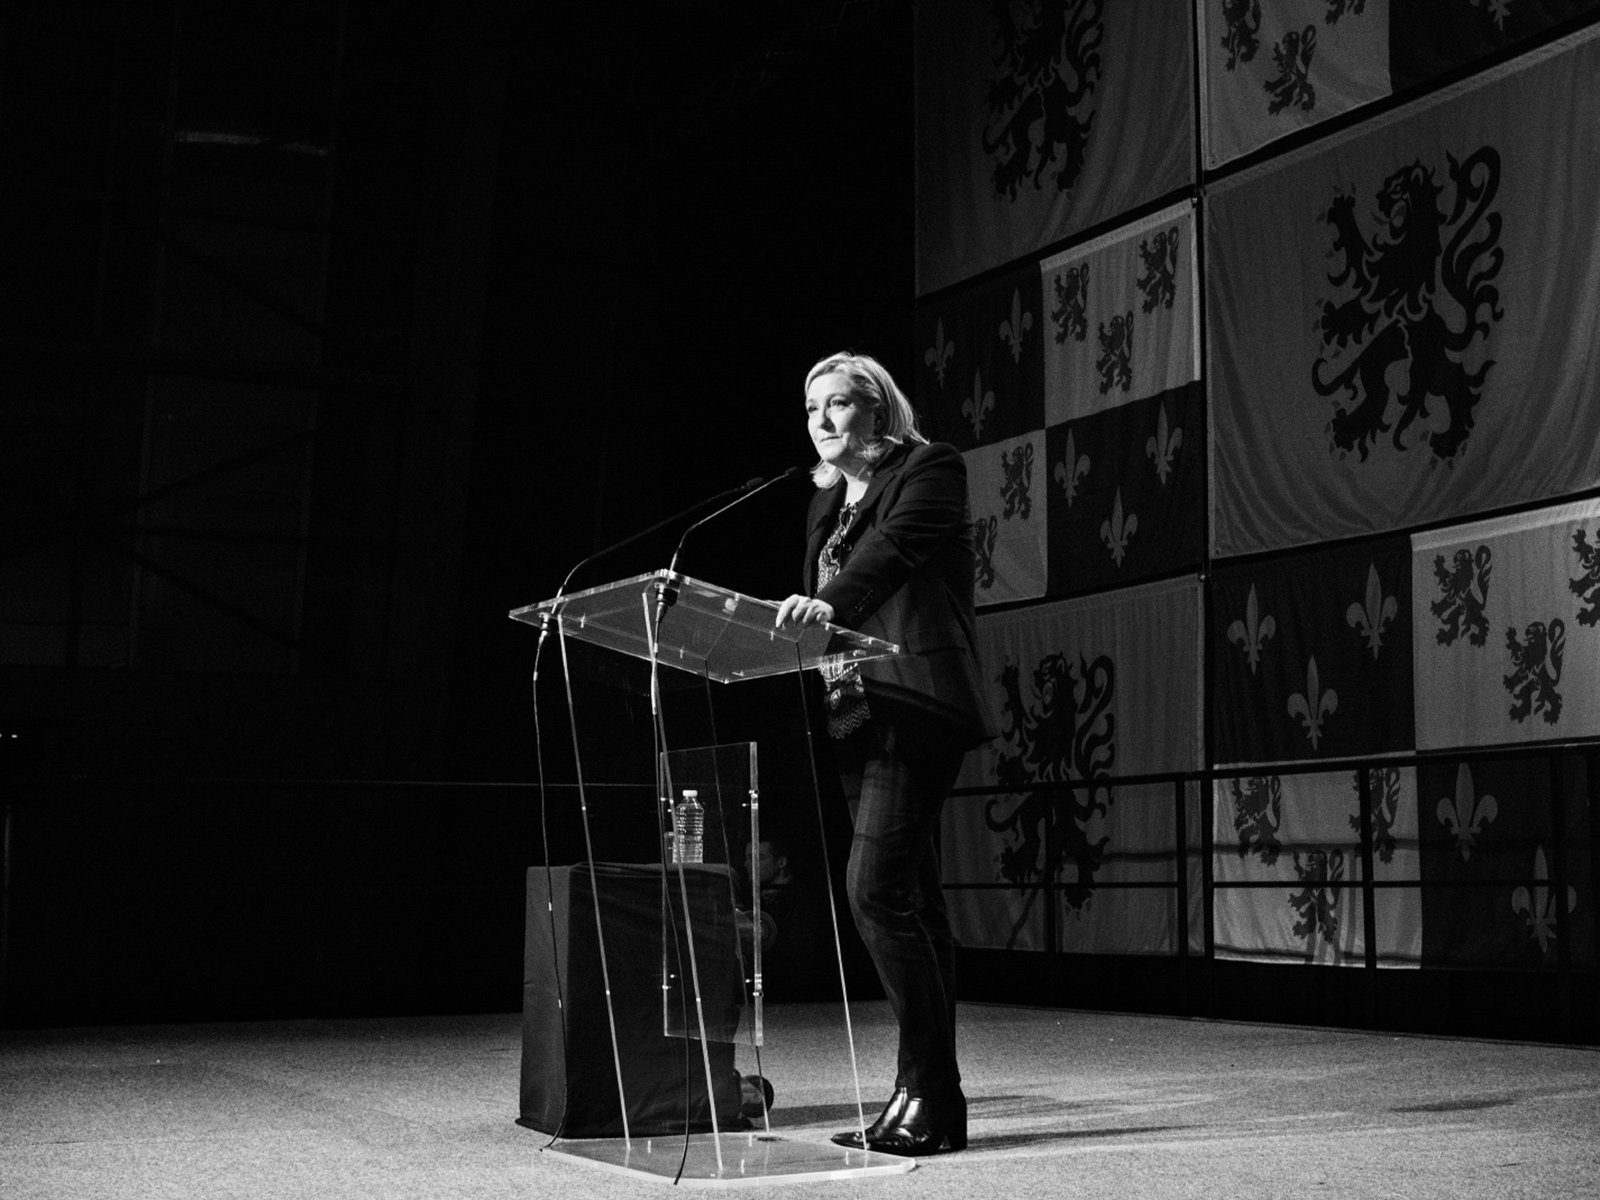 Marine Le Pen speaking to supporters at the end of the second round of regional elections, Hénin-Beaumont, France, December 2015